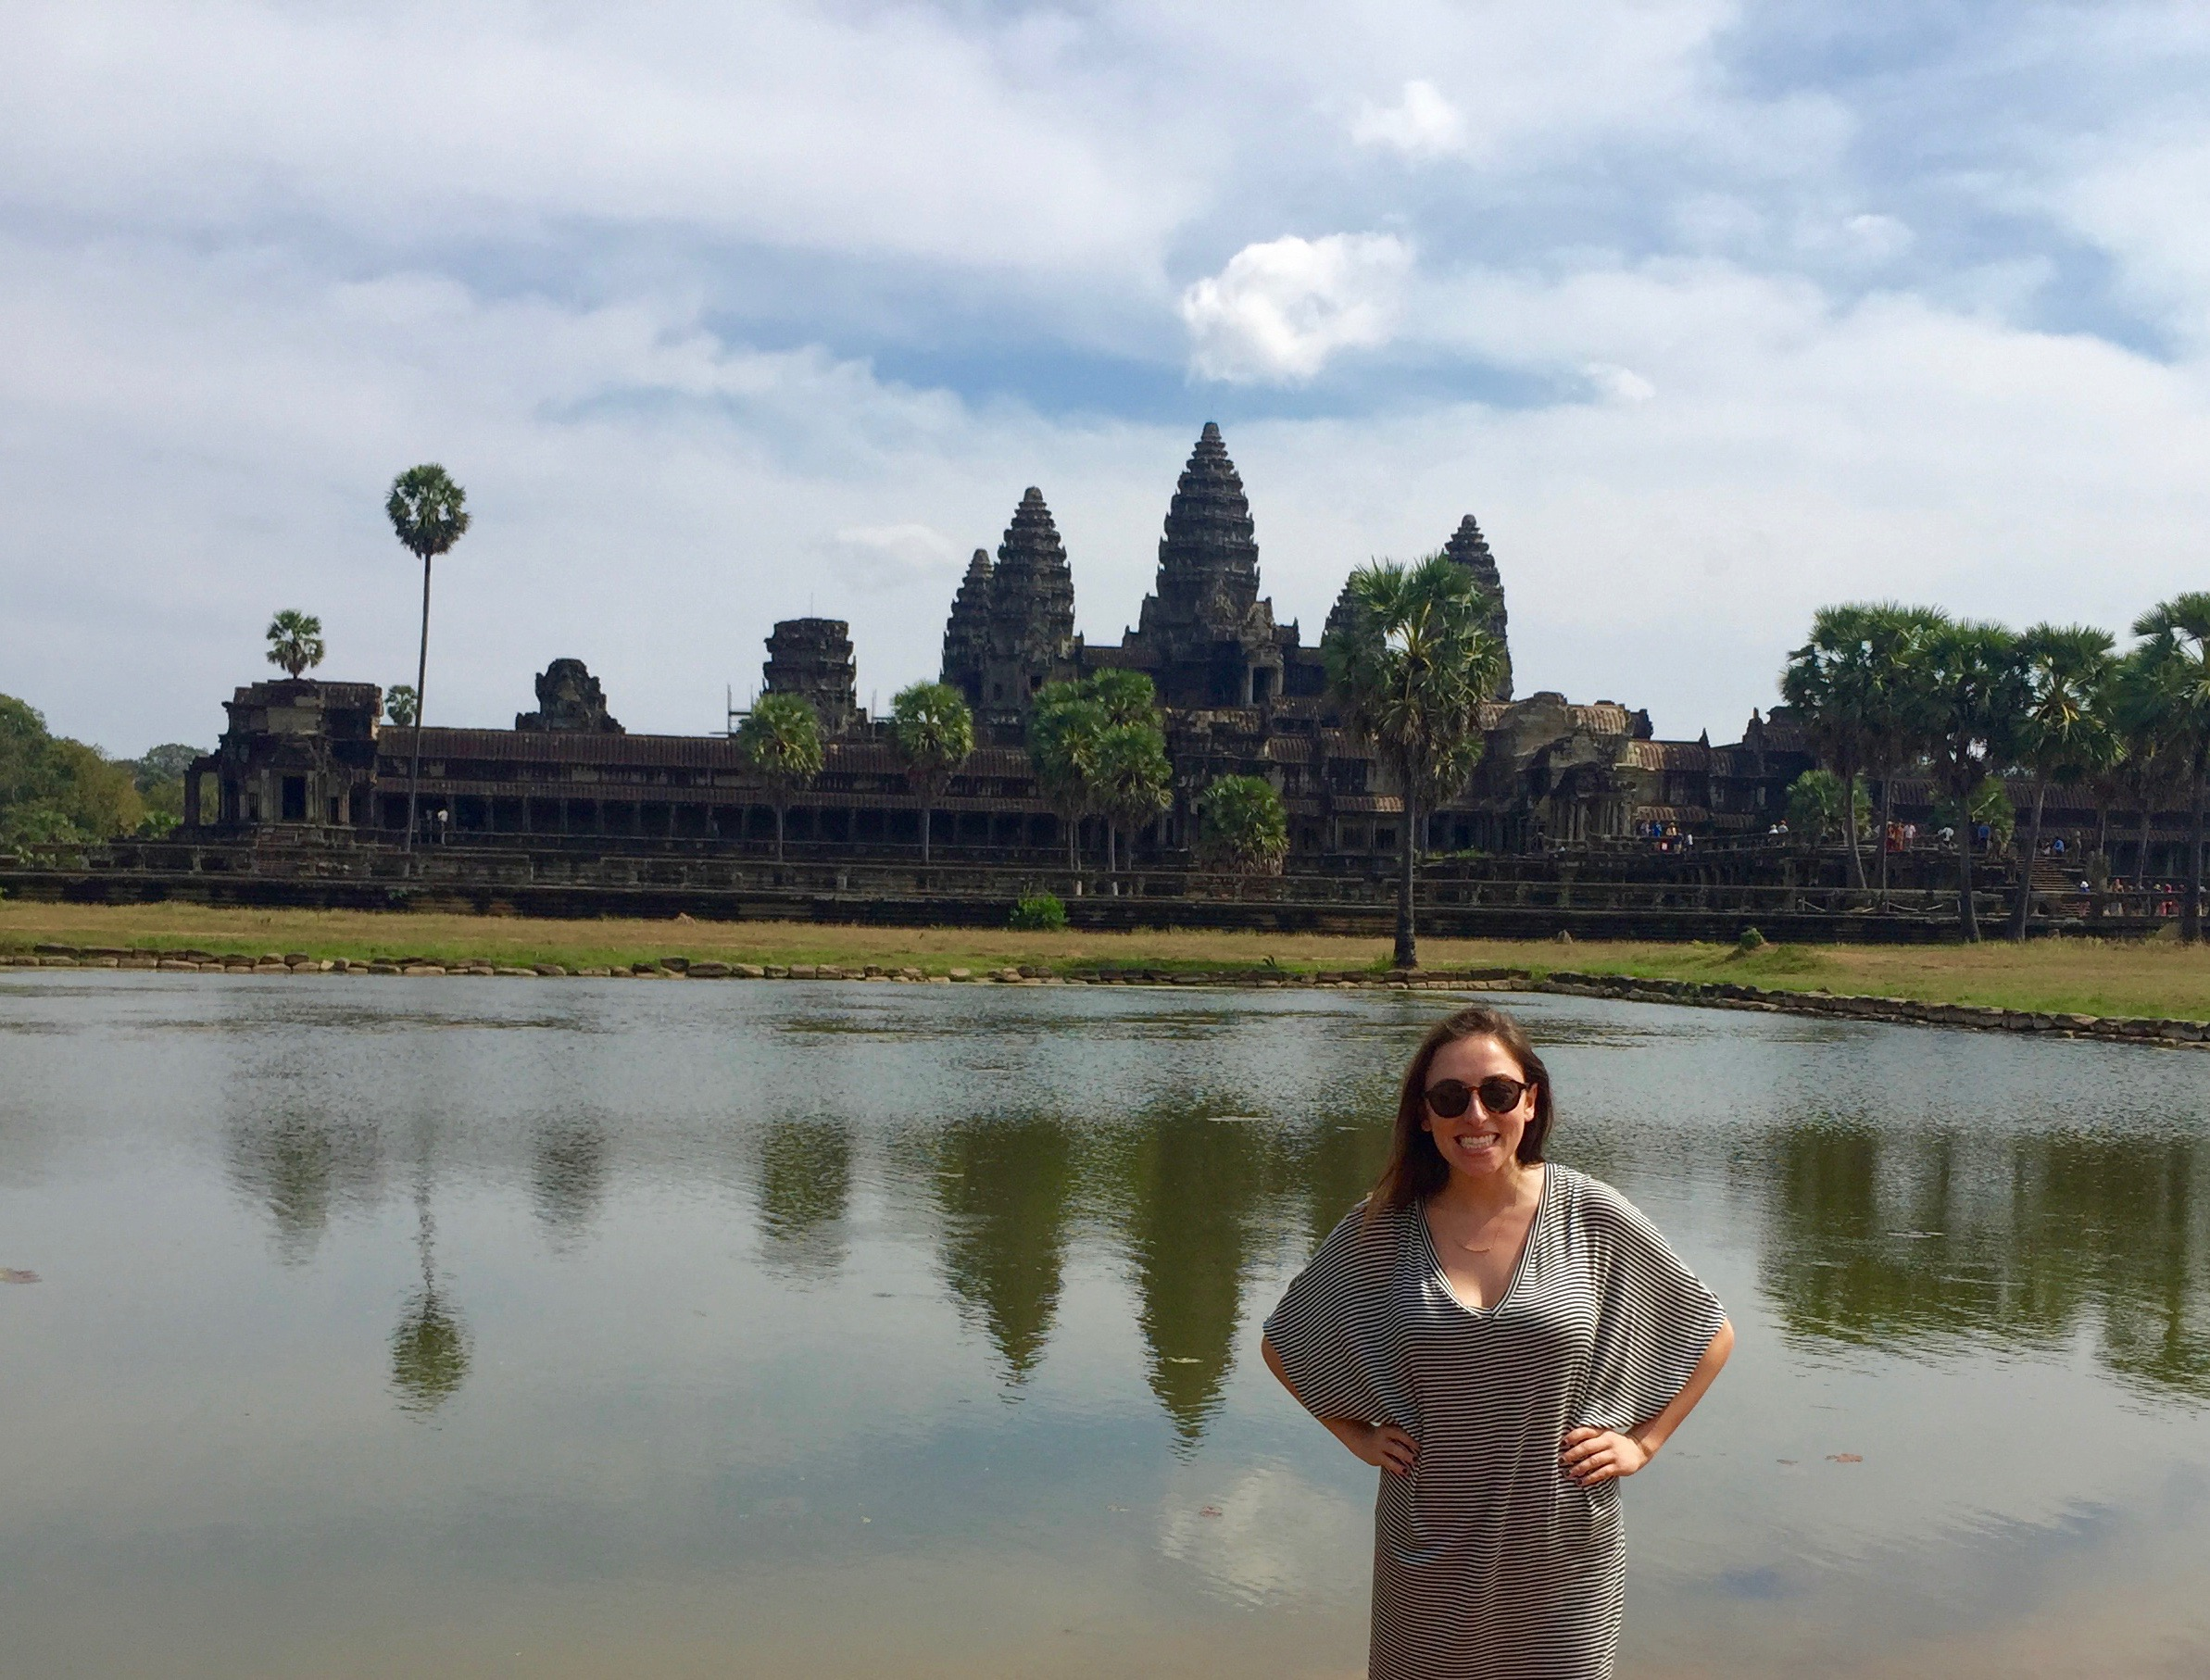 Standing in front of Angkor Wat, the largest of the Angkor temples.